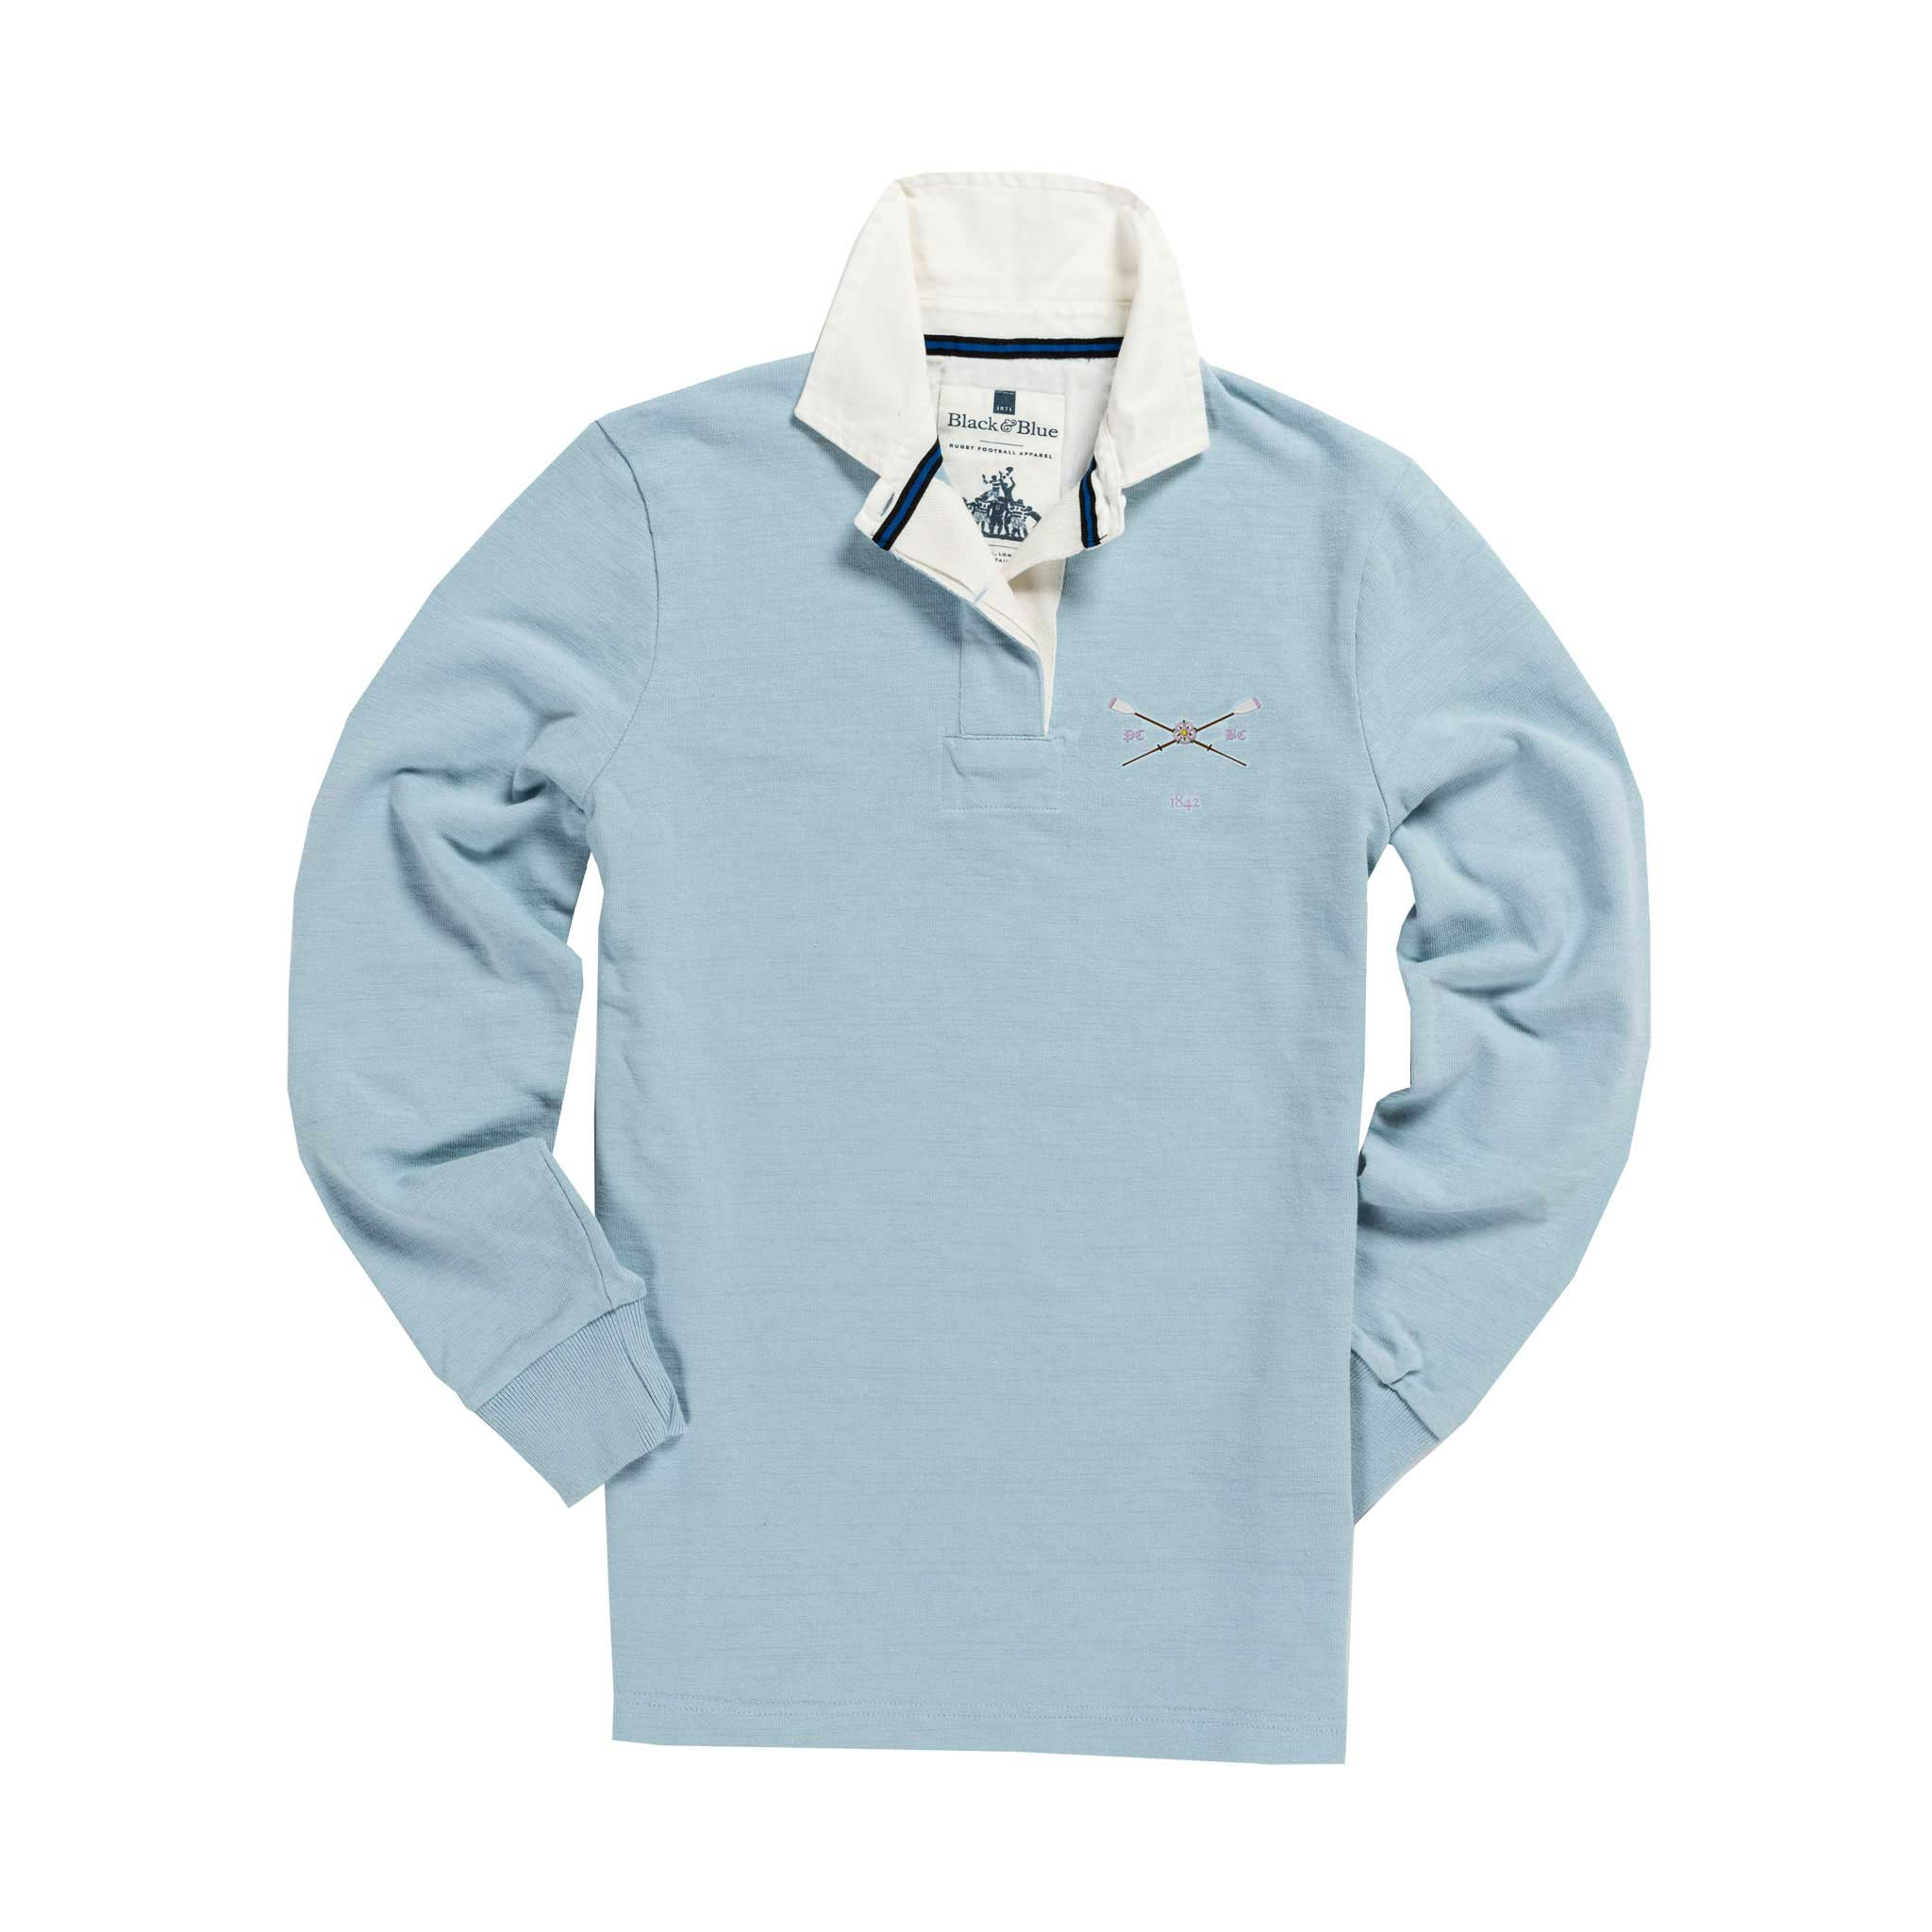 Pembrooke 1842 Women's Rugby Shirt_Front